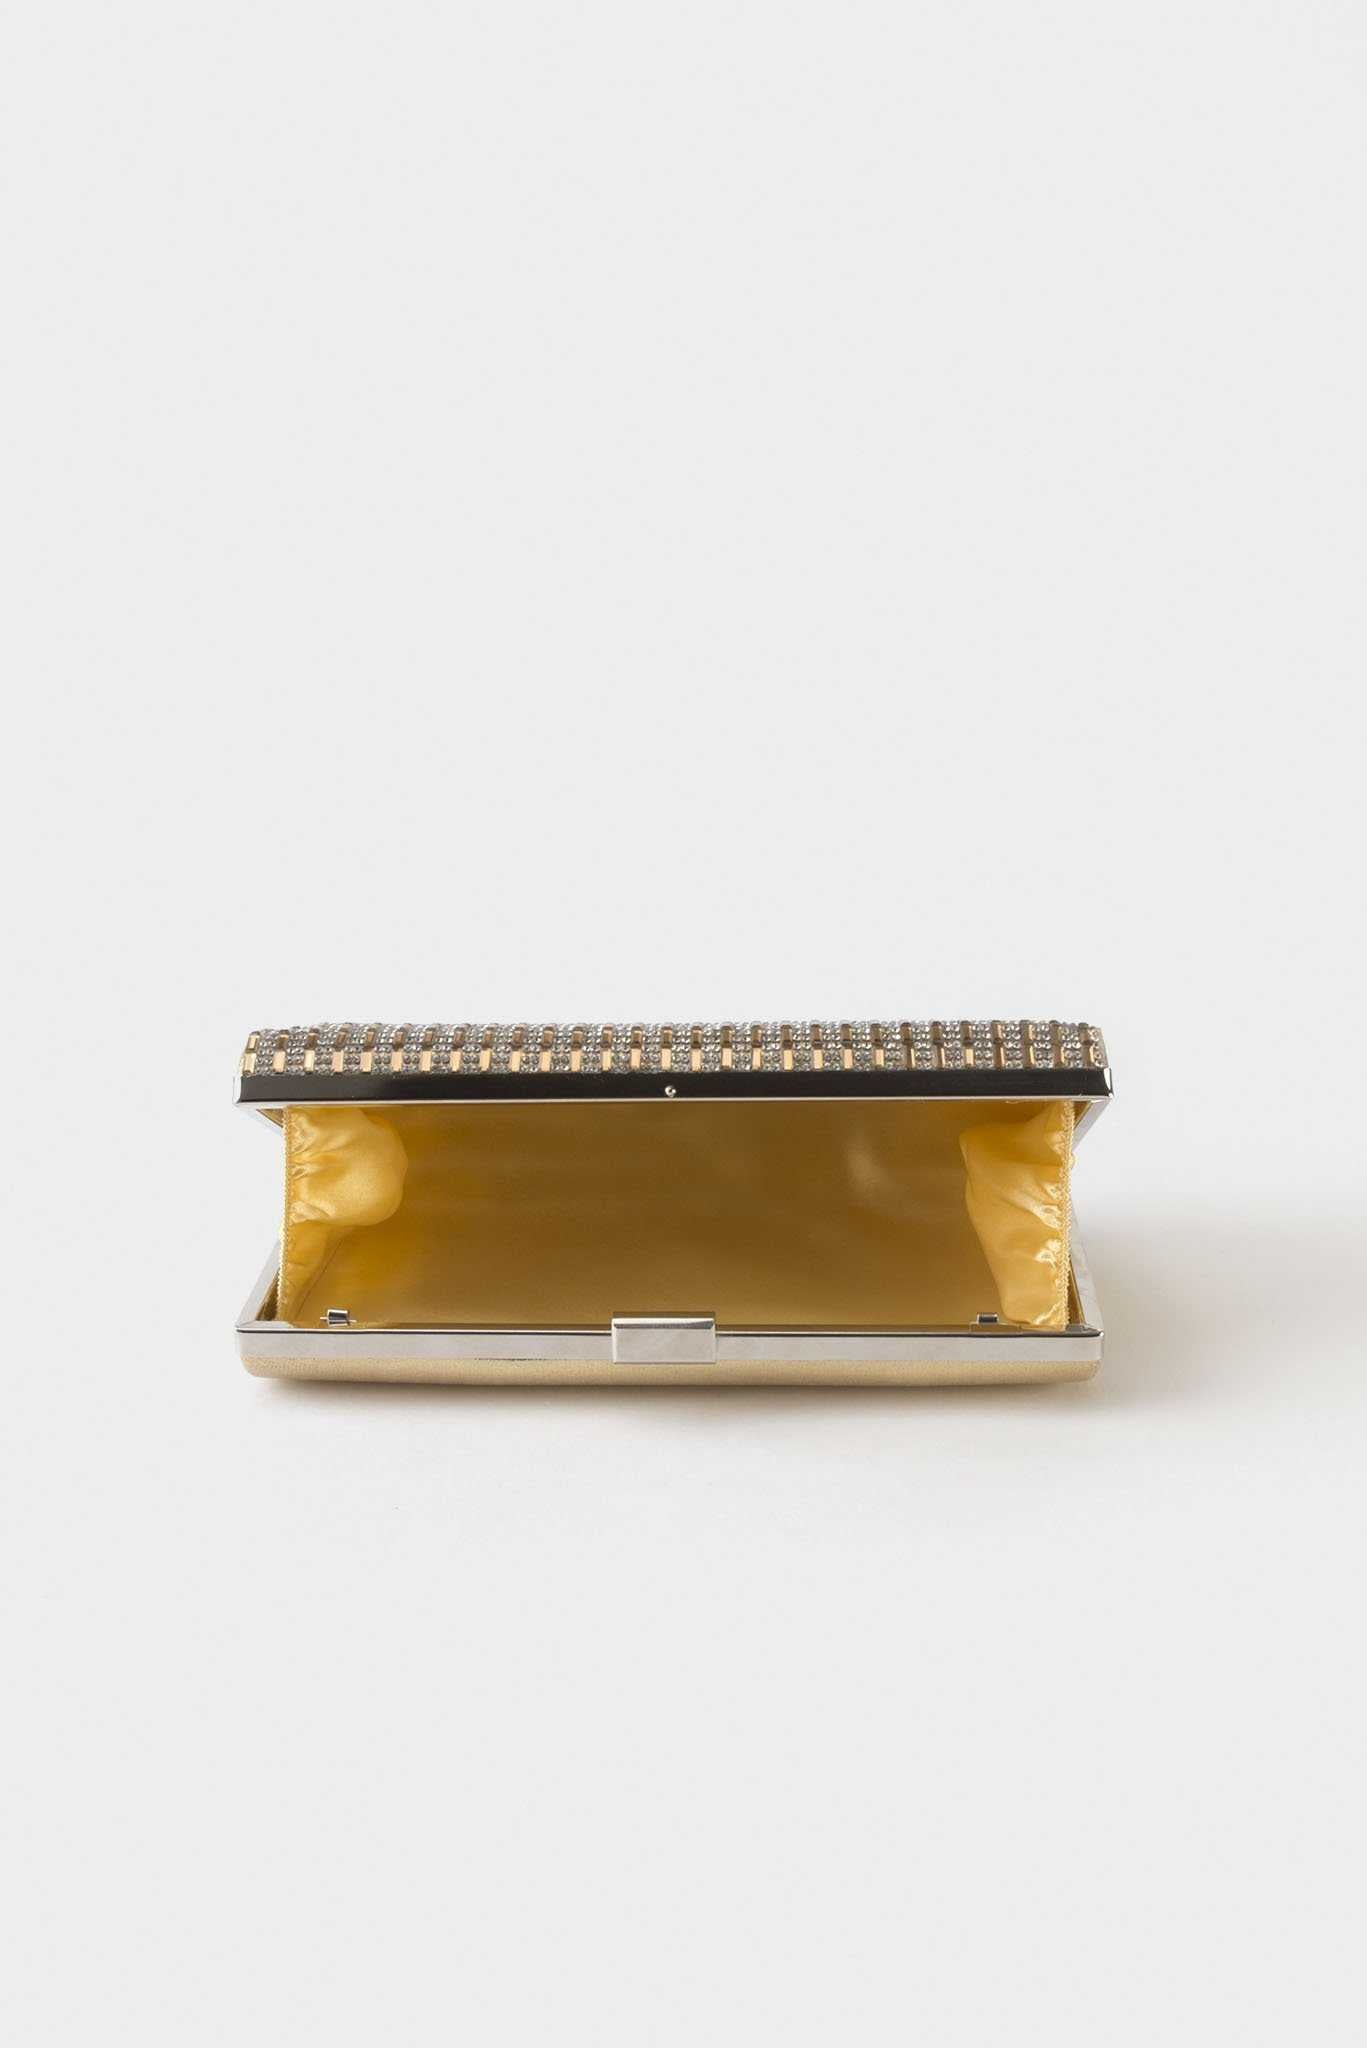 Rhinestone Clutch - Gold | Raw Orange